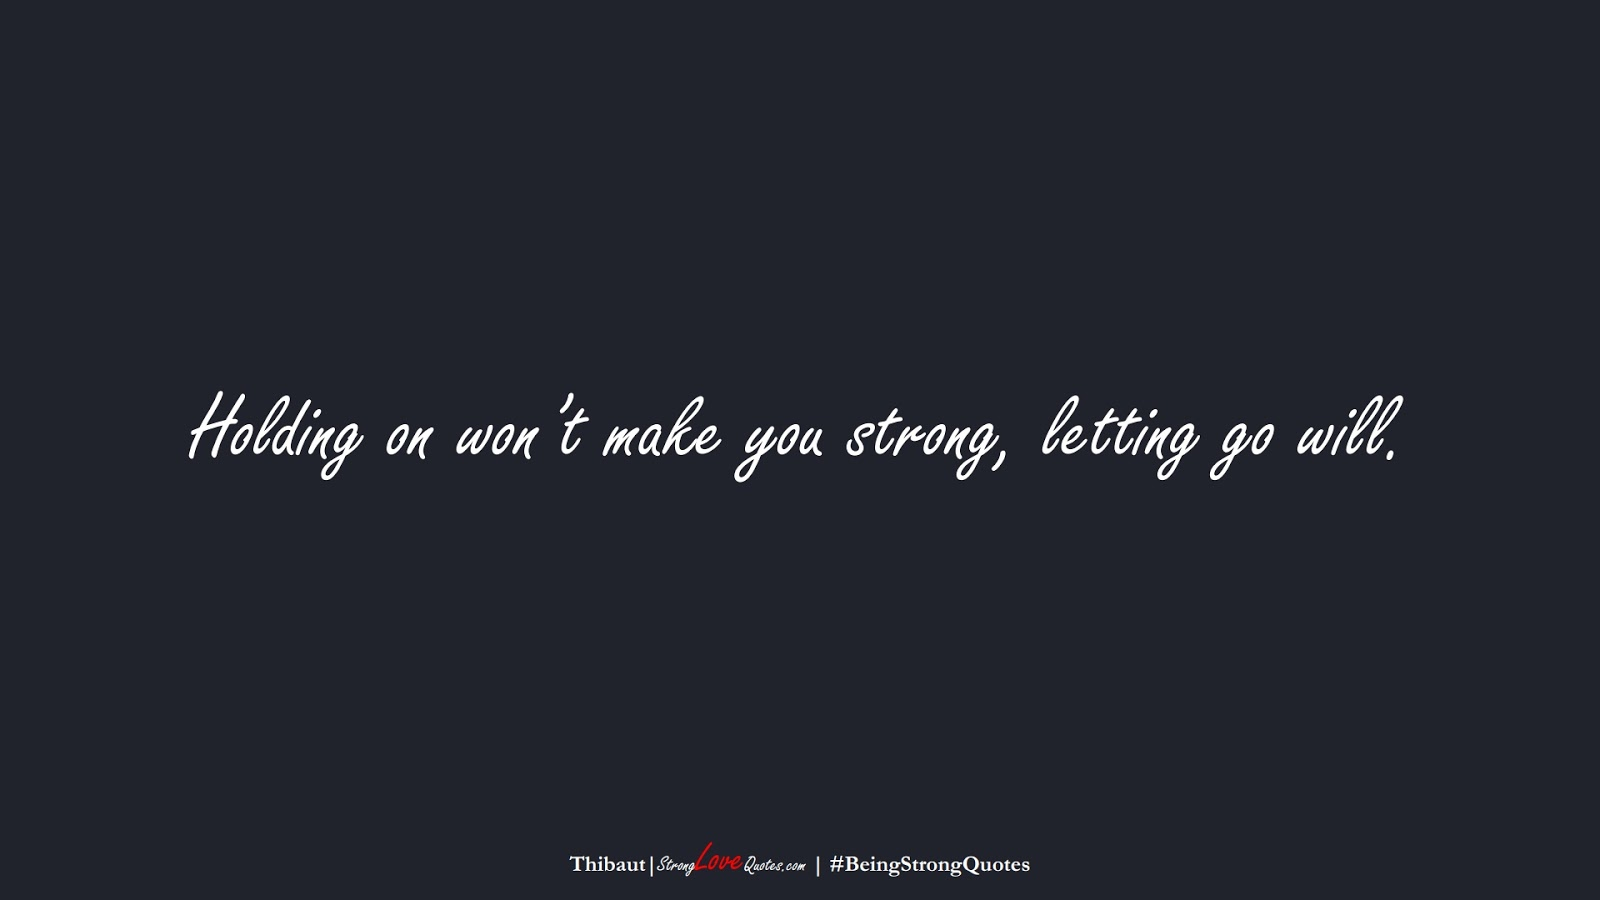 Holding on won't make you strong, letting go will. (Thibaut);  #BeingStrongQuotes